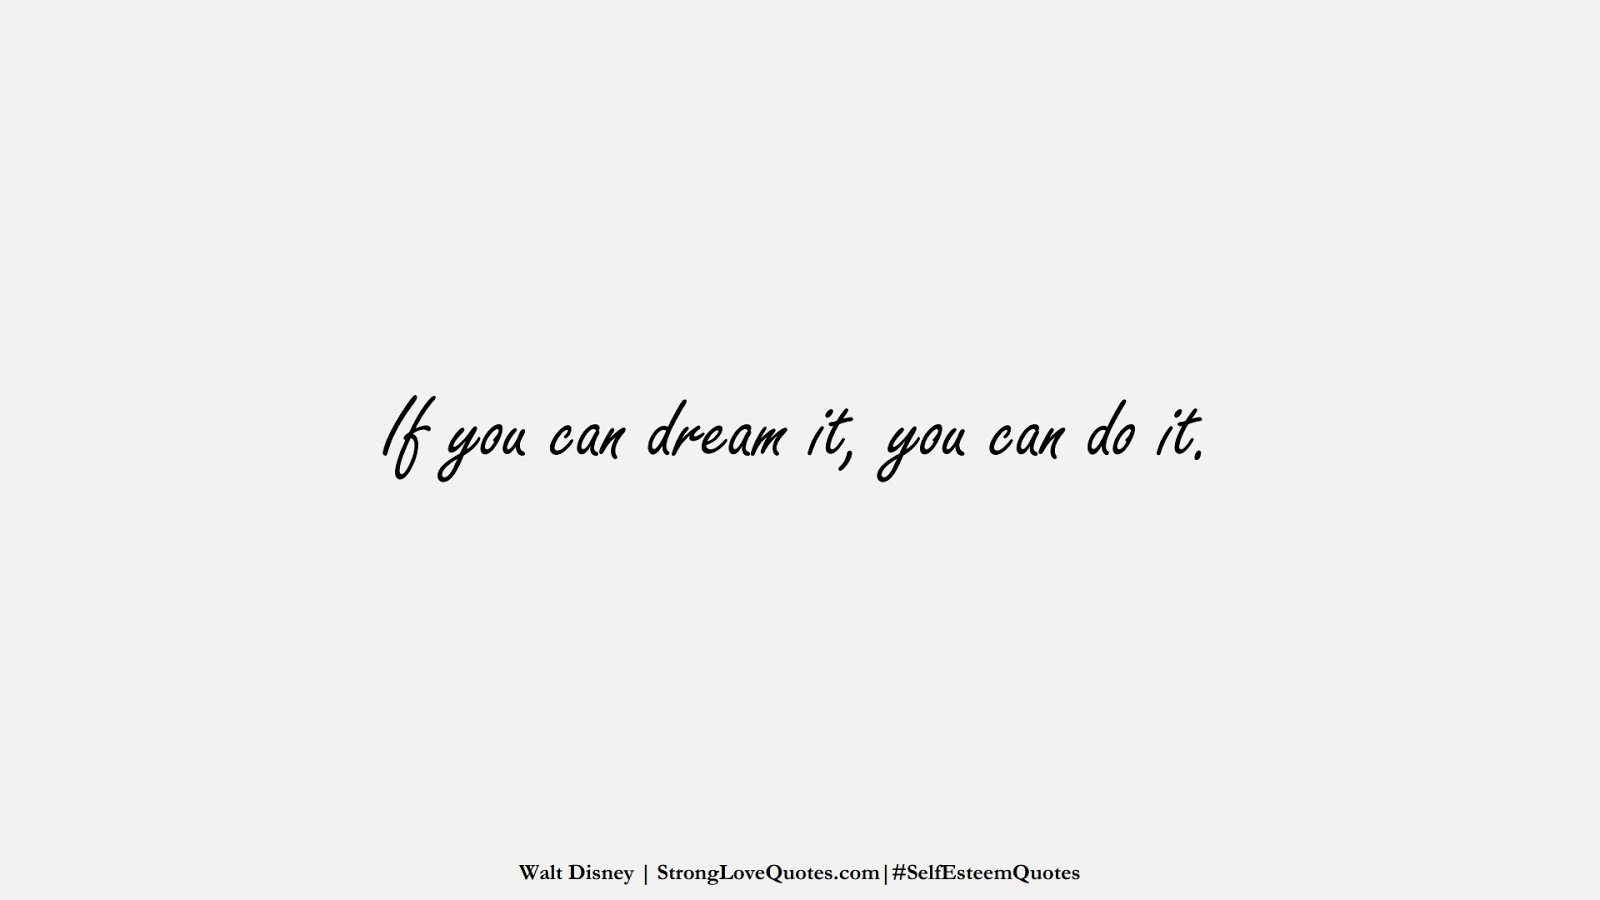 If you can dream it, you can do it. (Walt Disney);  #SelfEsteemQuotes